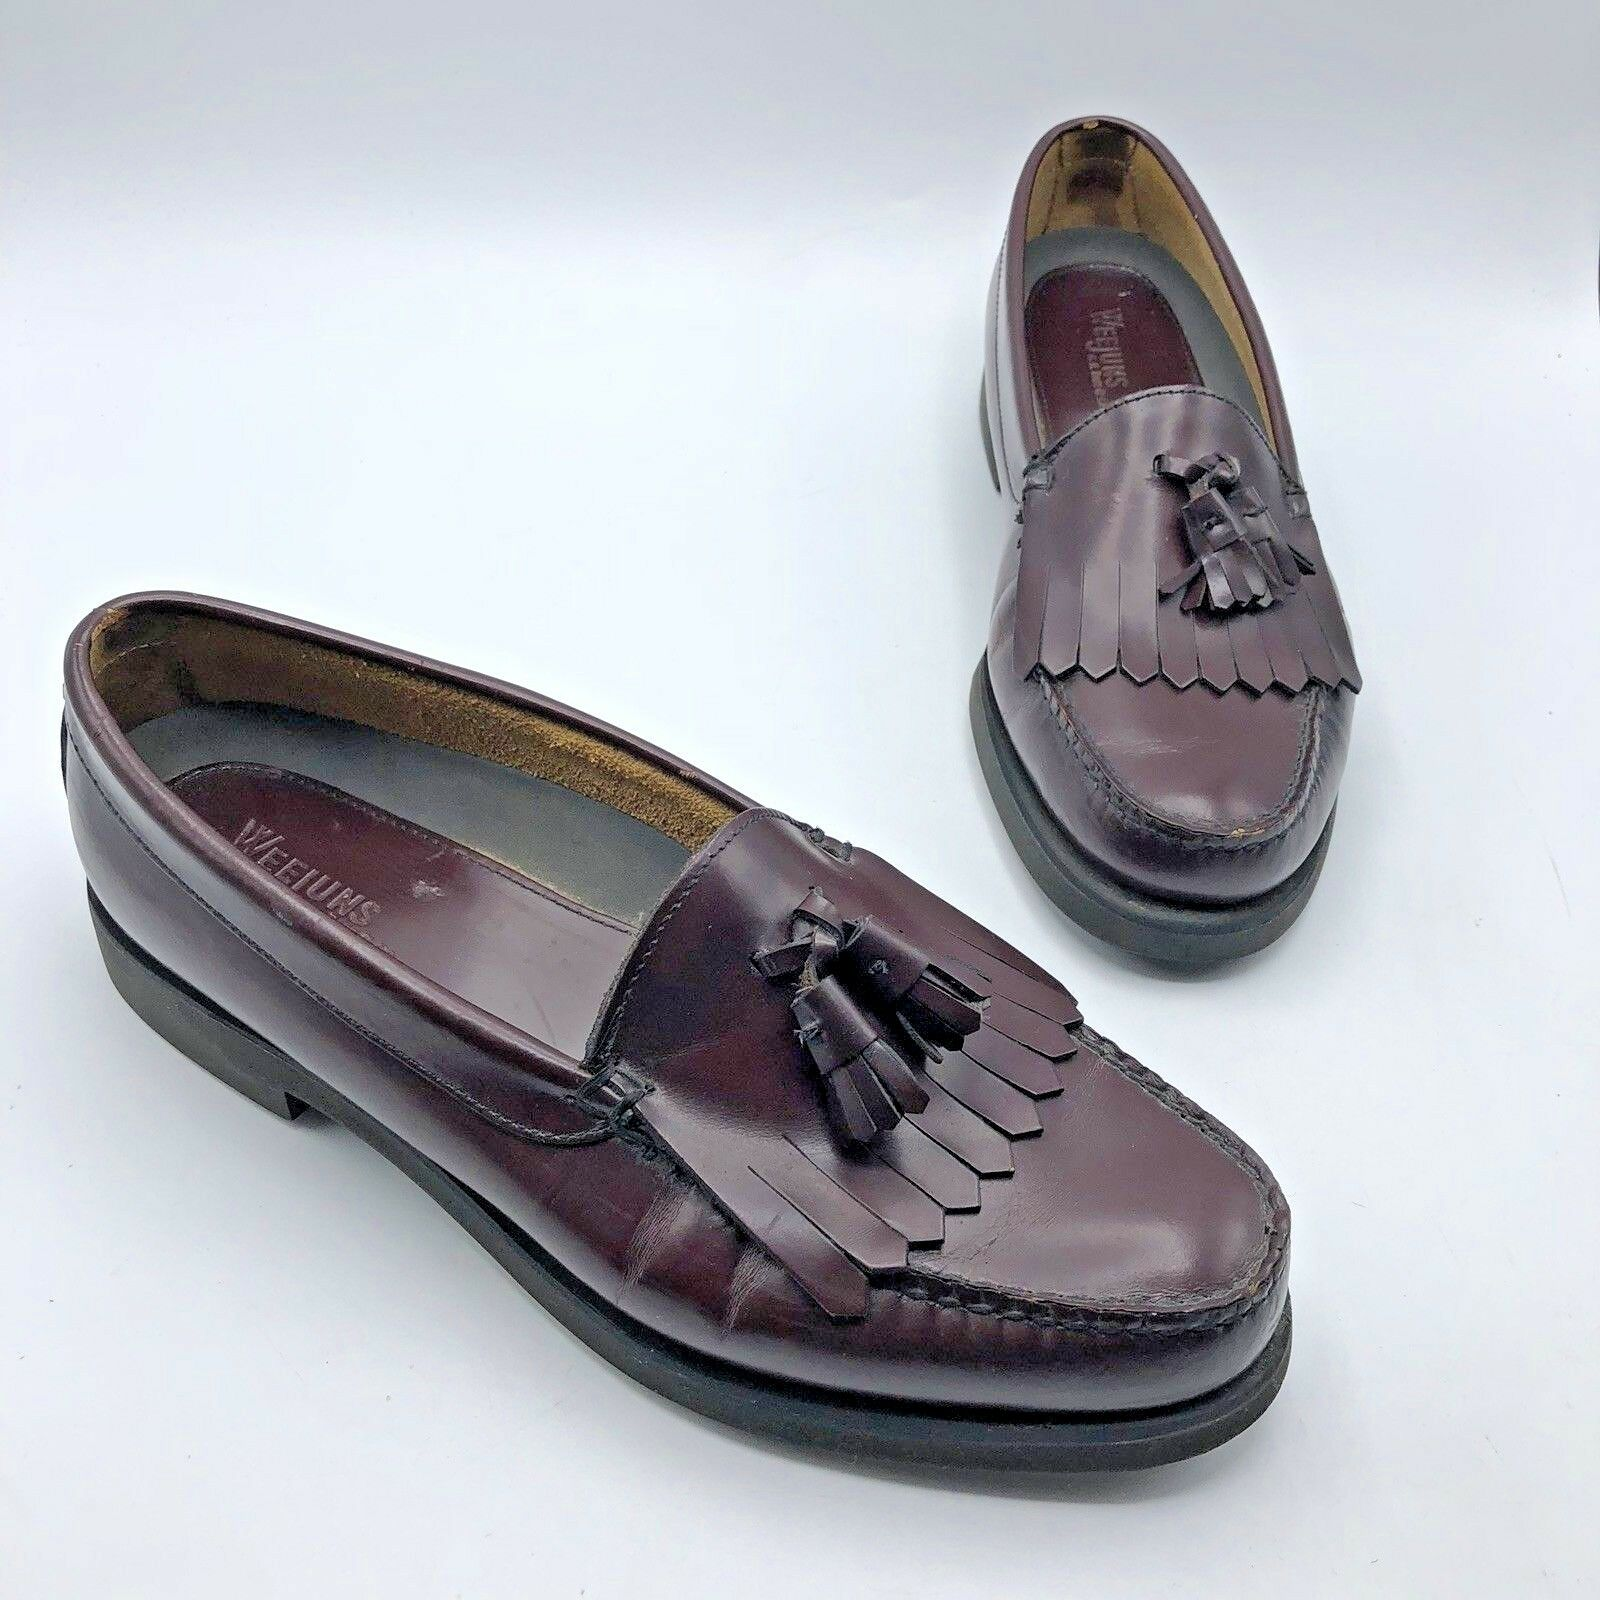 Weejuns 071081 Men Brown Leather Tassle Loafer shoes Size 10M Pre Owned